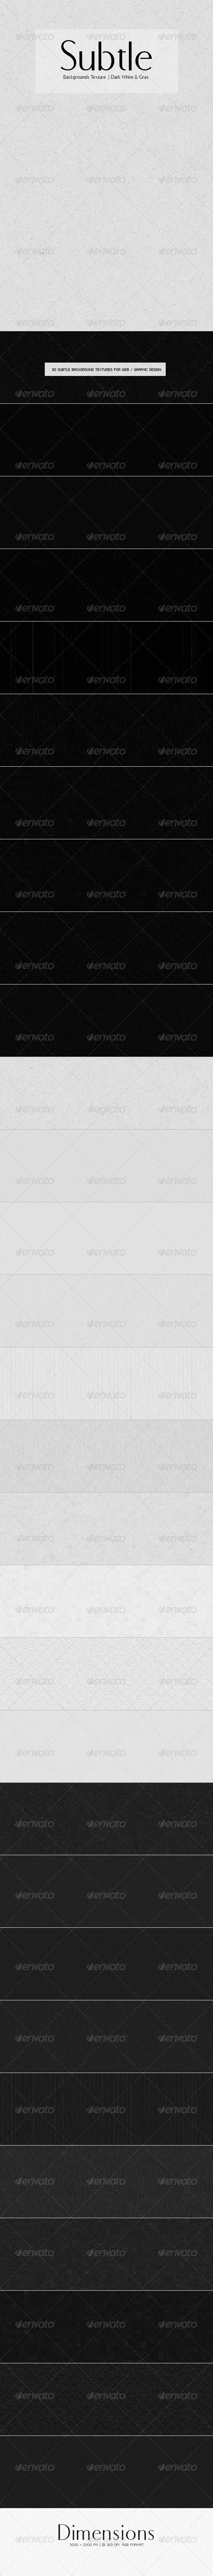 GraphicRiver Subtle Backgrounds Texture Dark White & Gray 4748121